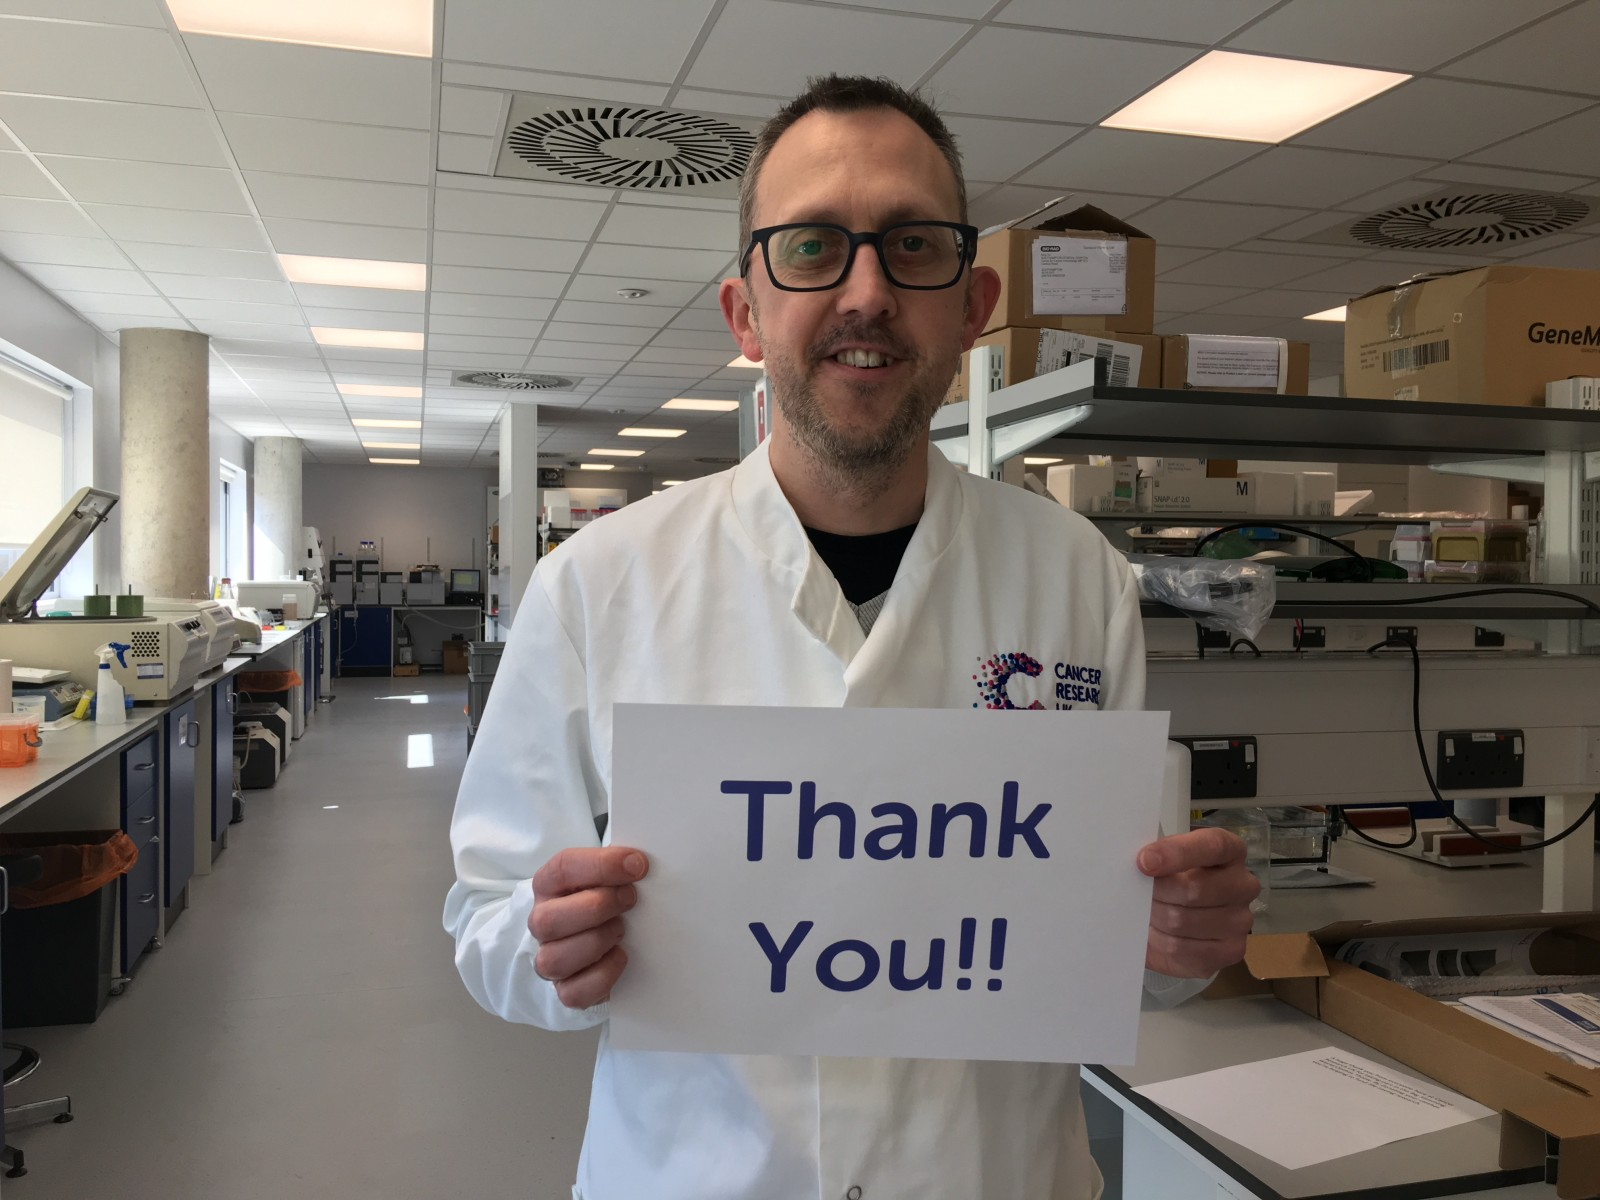 Dr Edd James who works at Cancer Research UK's Southampton Centre